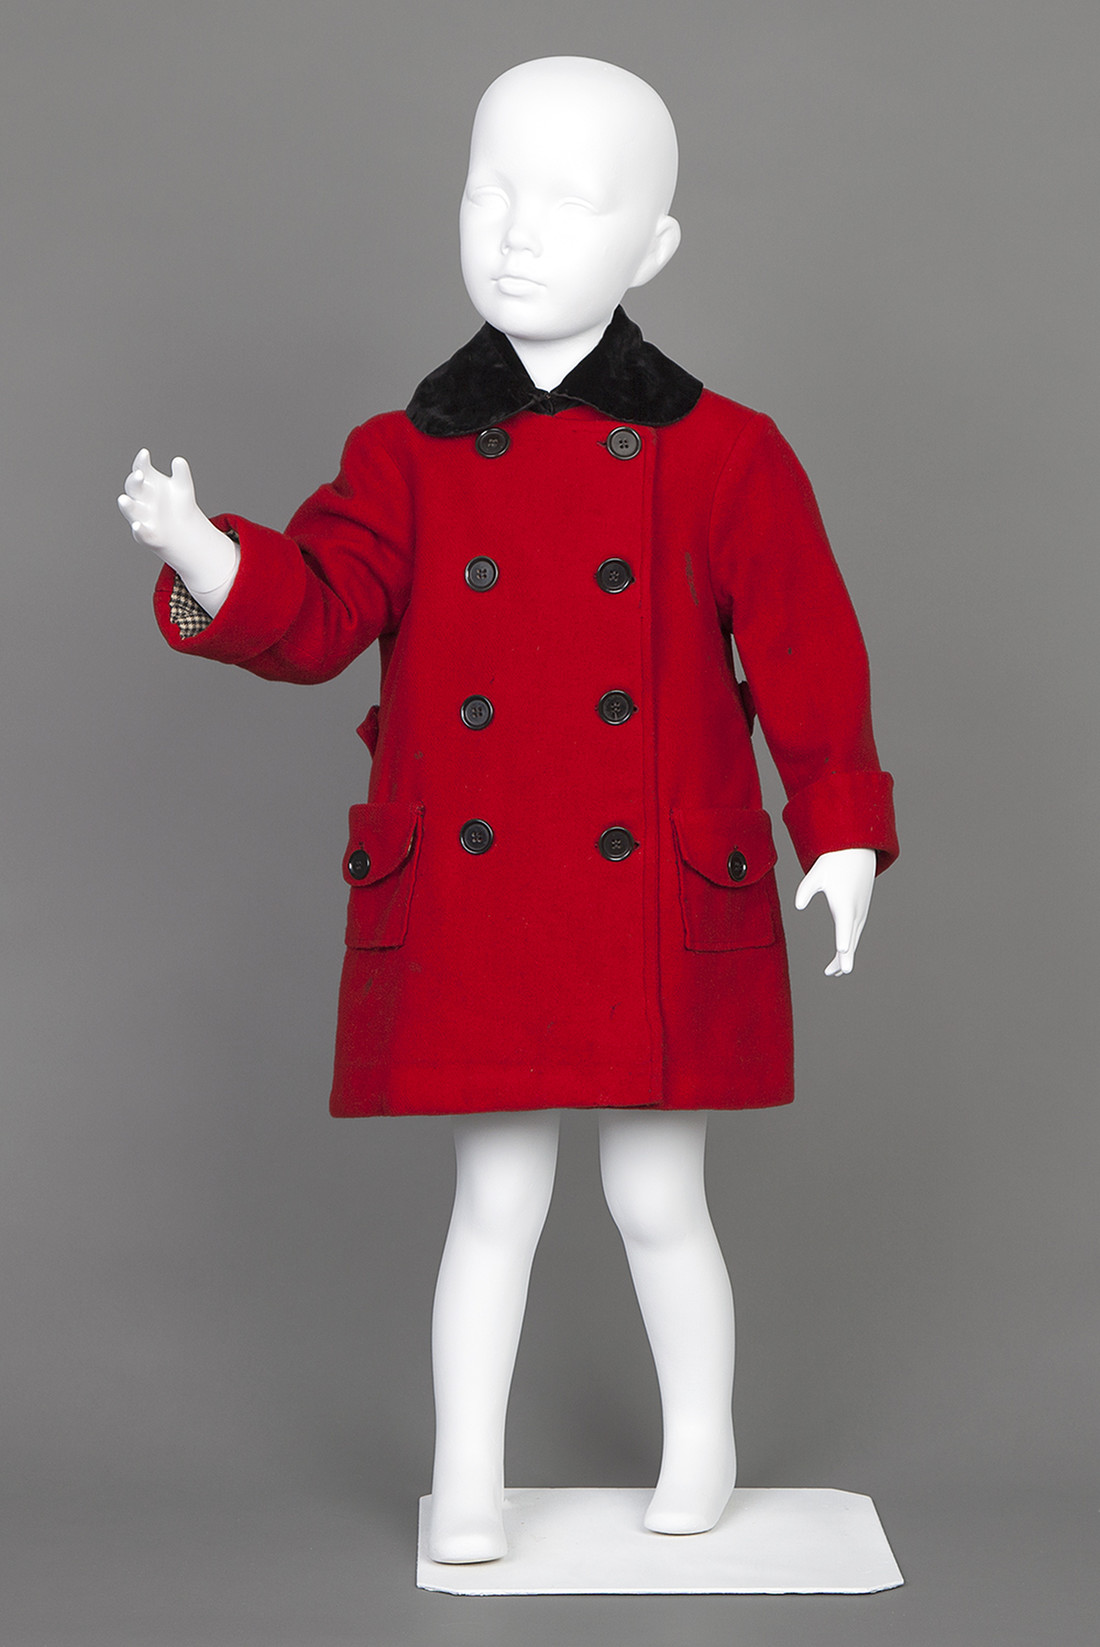 Child's red coat